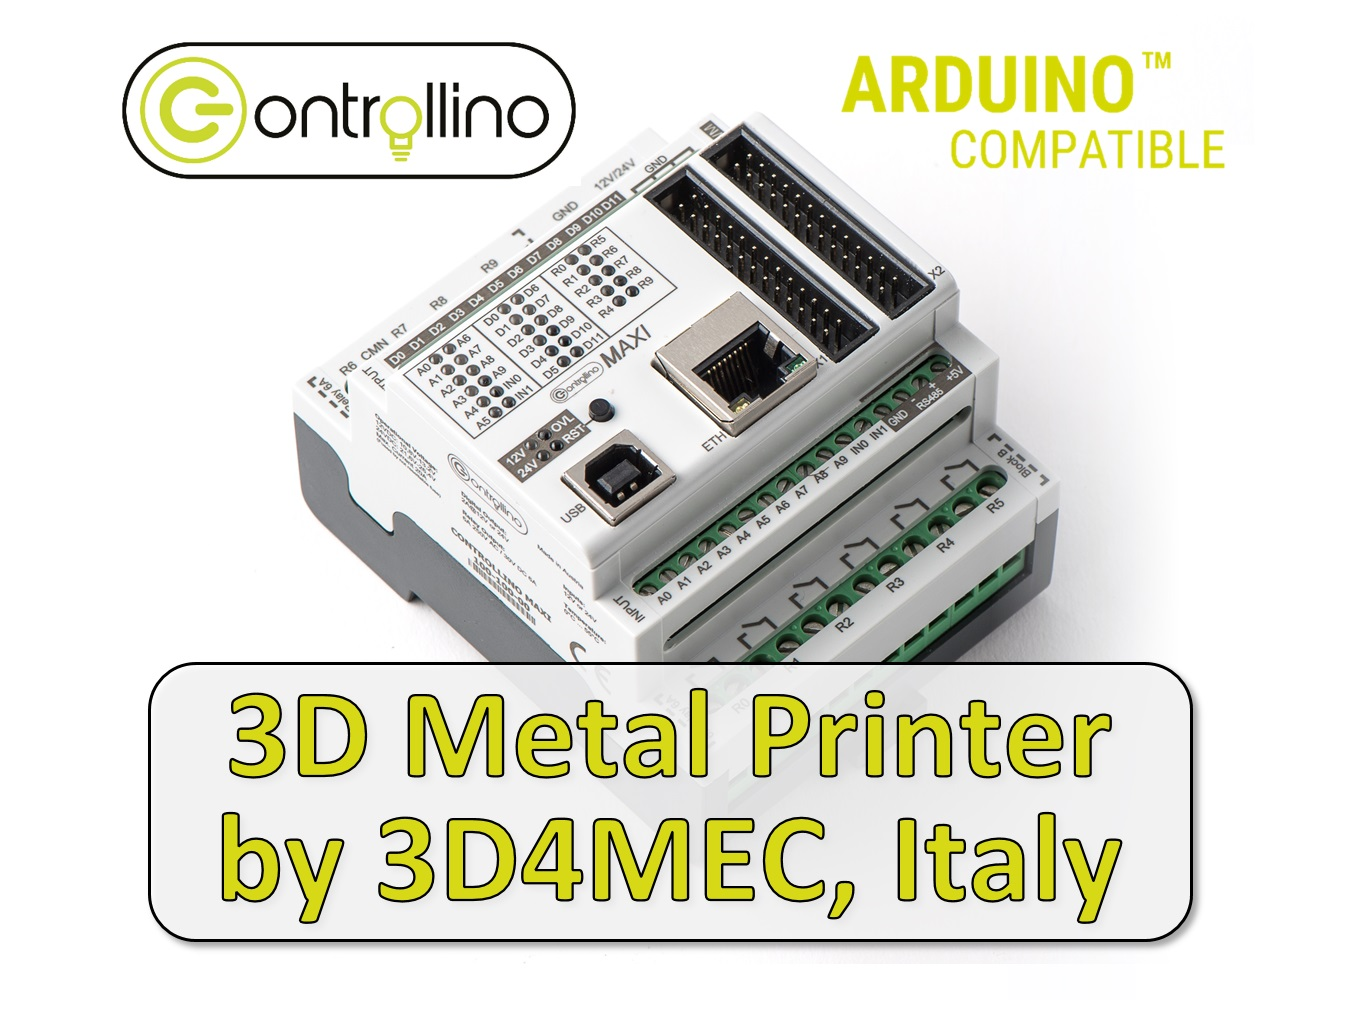 Arduino Uno Ladder T Progetti Plclib Function Block Diagrams Electronics And Micros 3d Metal Printer By 3d4mec Italy Powered Controllino